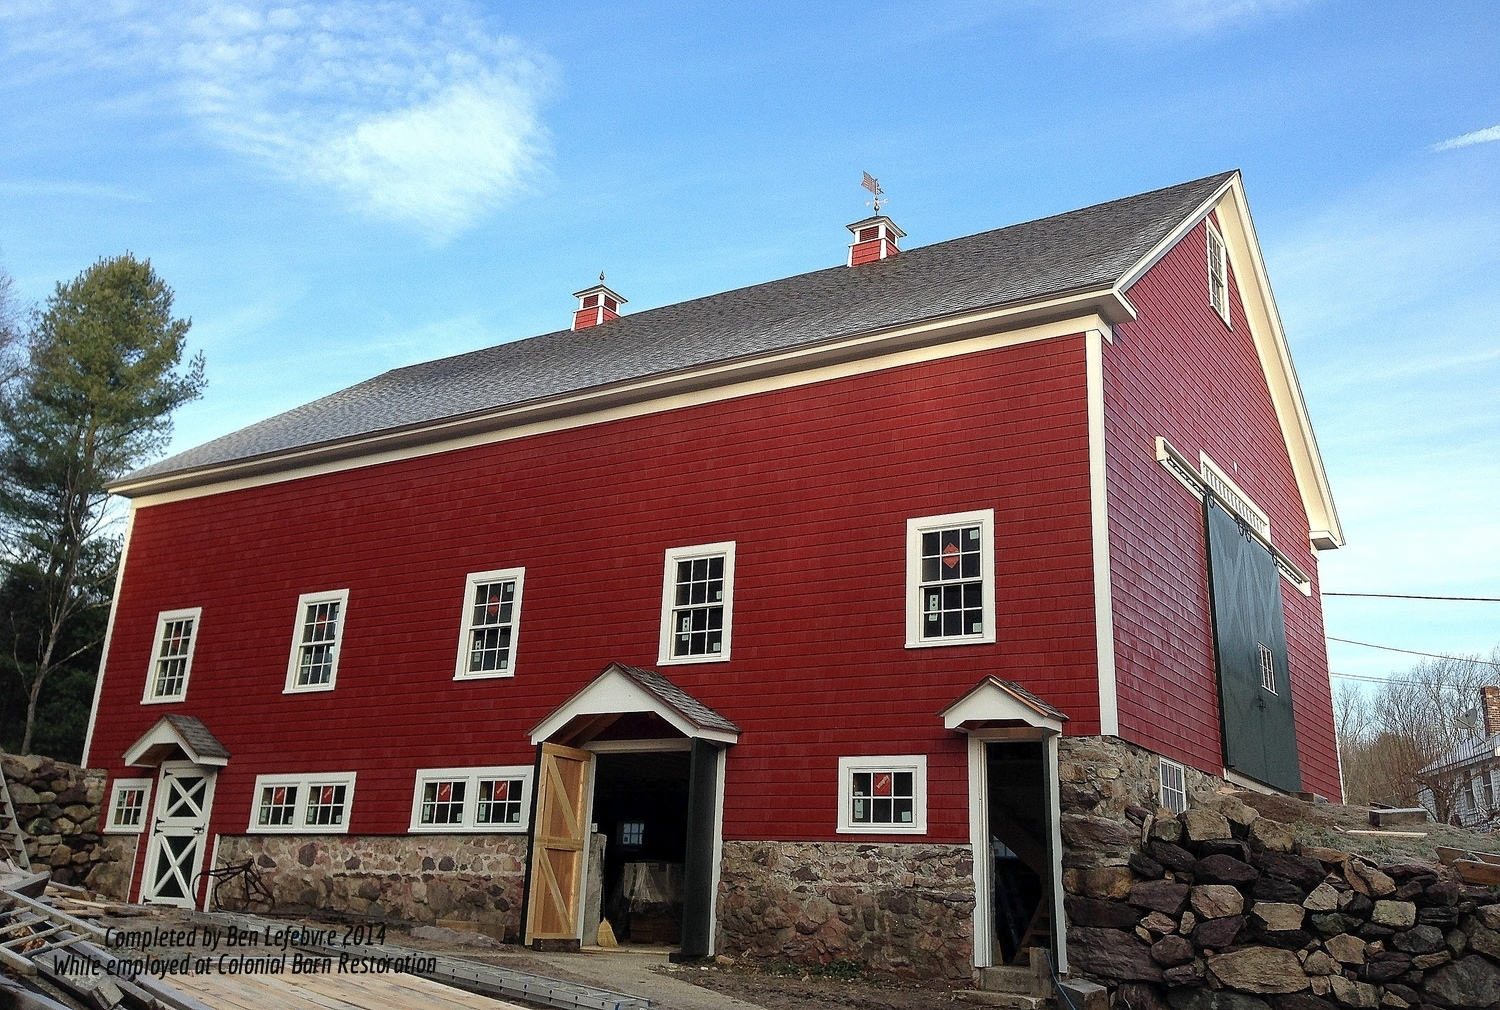 Aforlorn barn becomes a stately building again, heralding to the day of family farms.